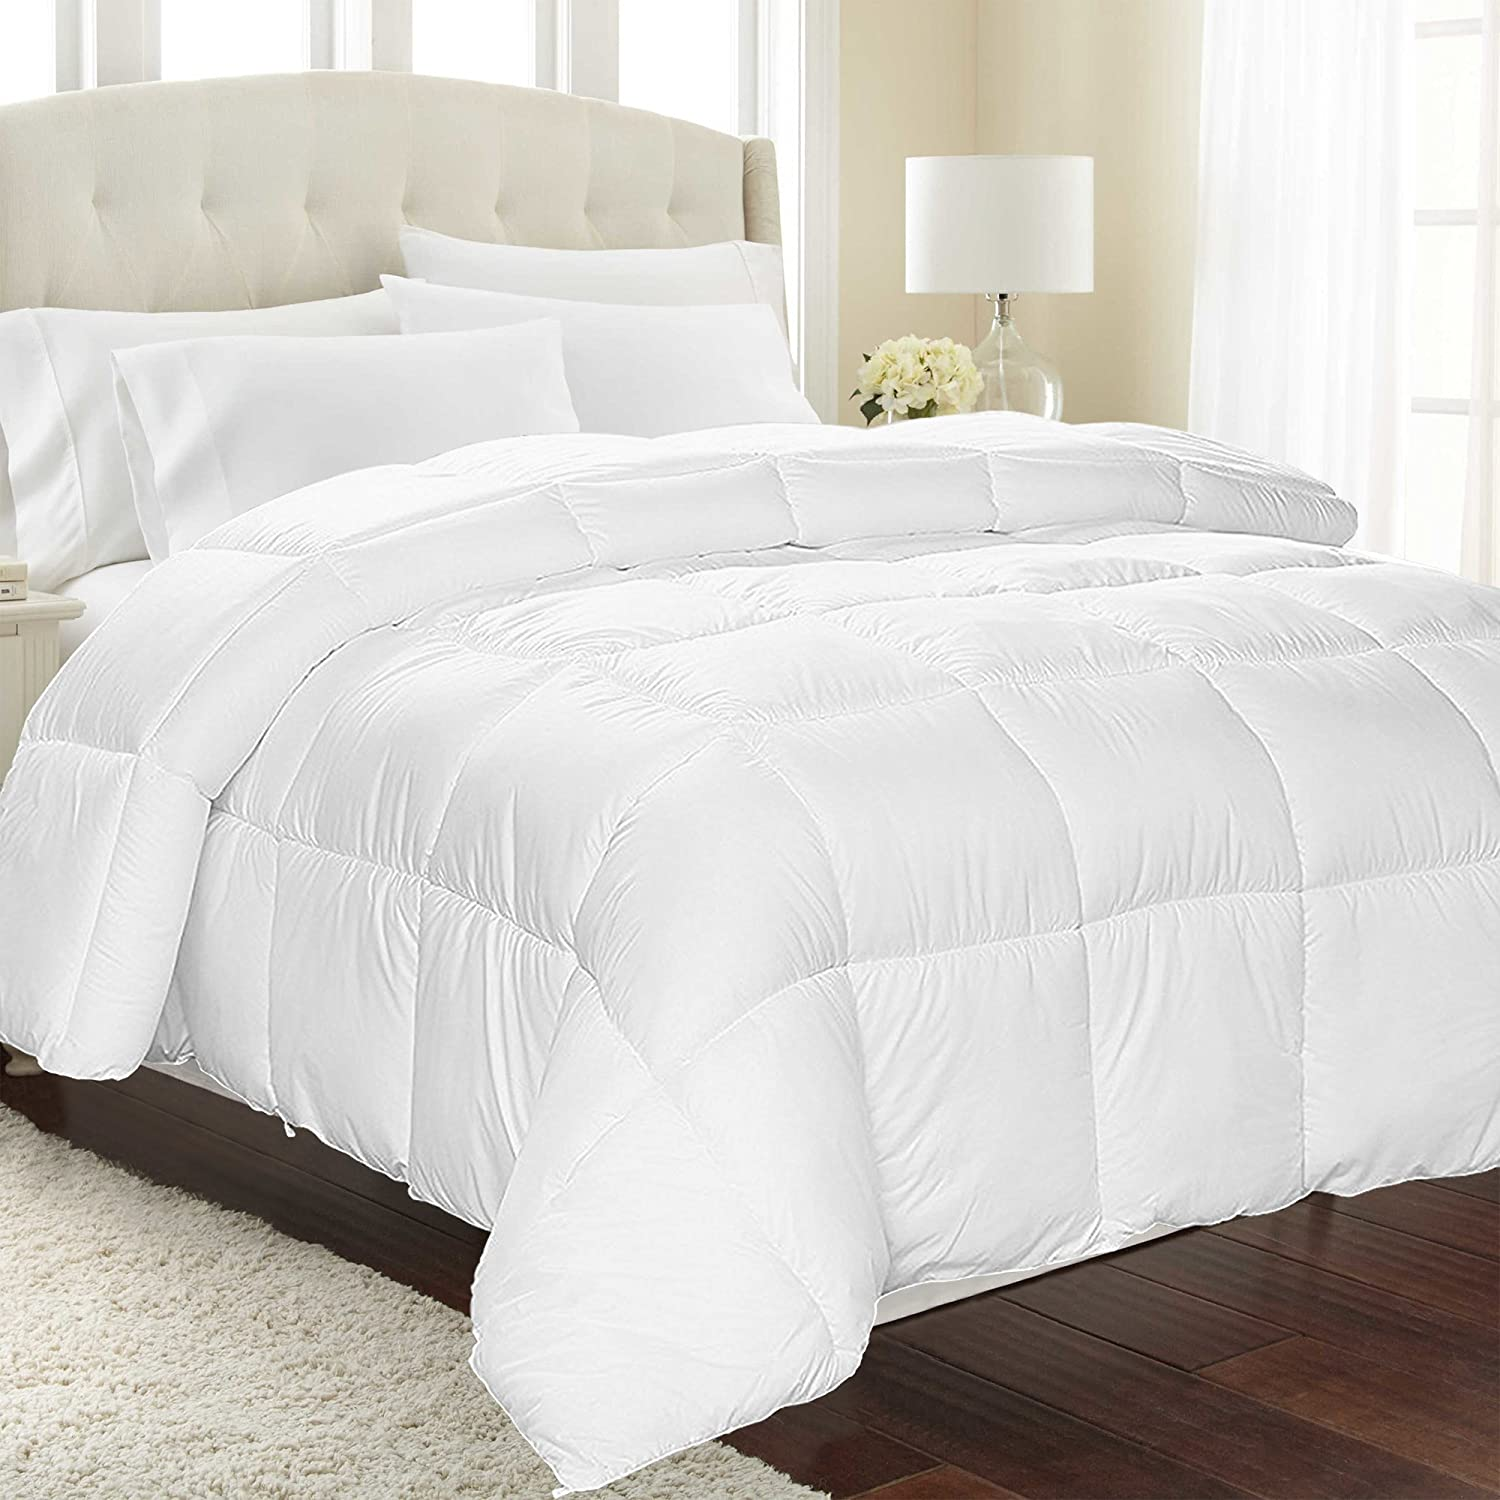 duvet equinox shop white com full season all b quilted cover amazon sets comforter